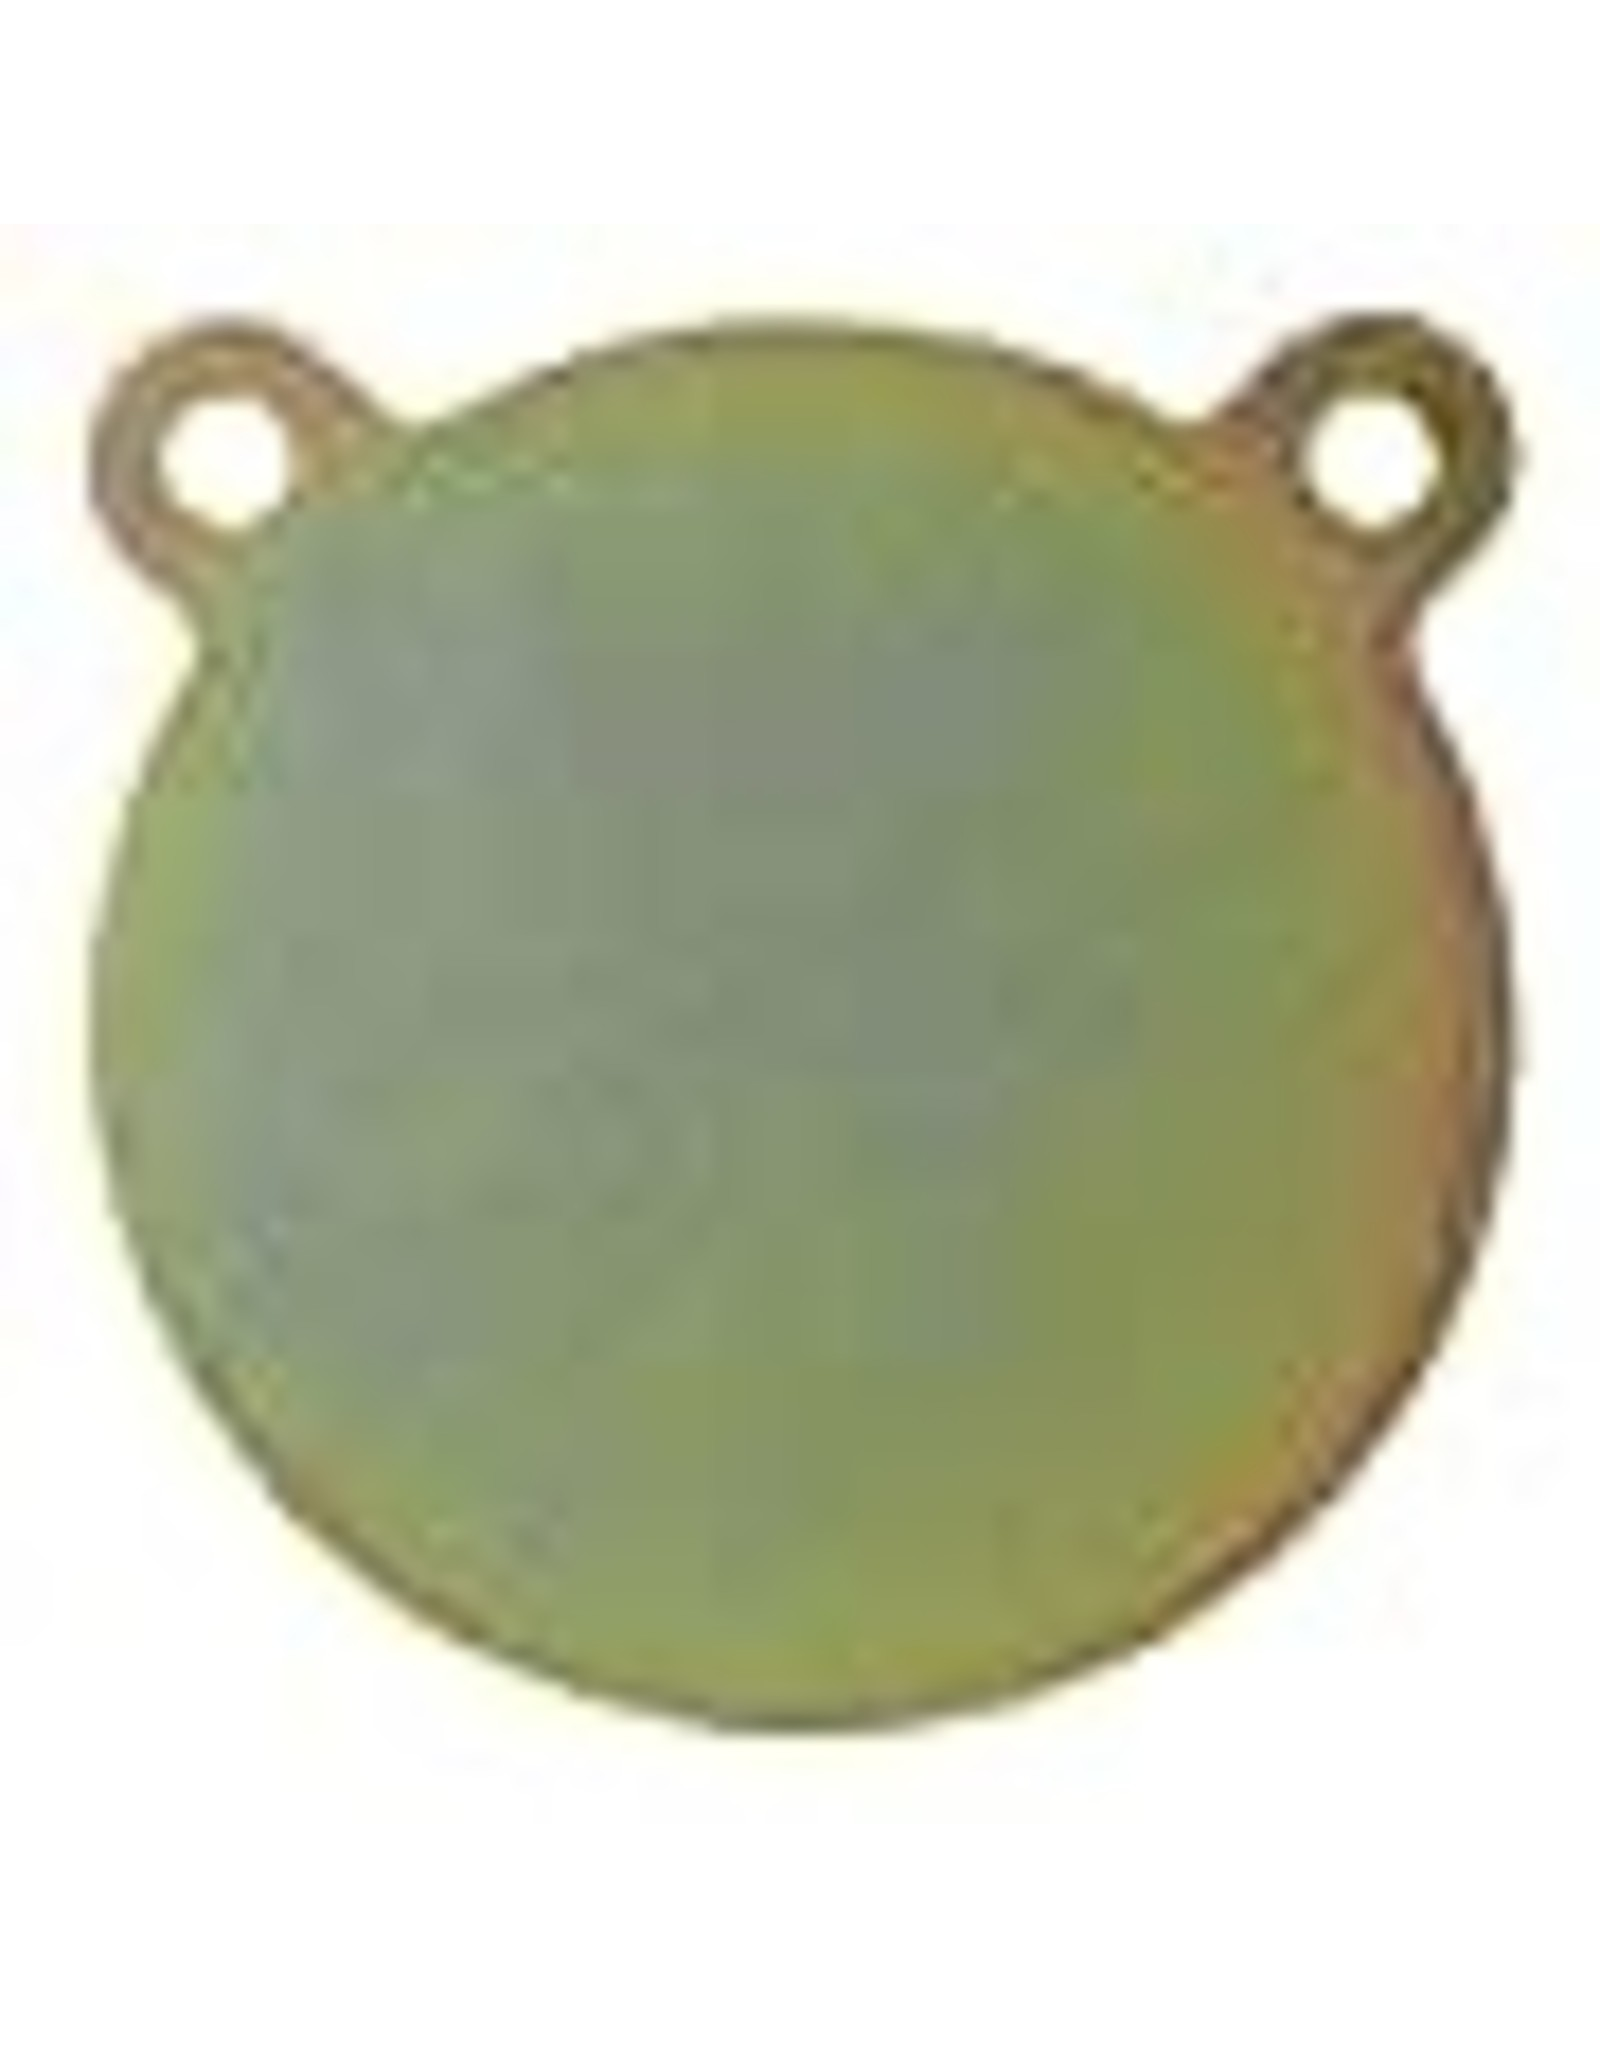 "AR500 Steel Gong Target - 6 x 1/4"" (for pistols and handguns)"